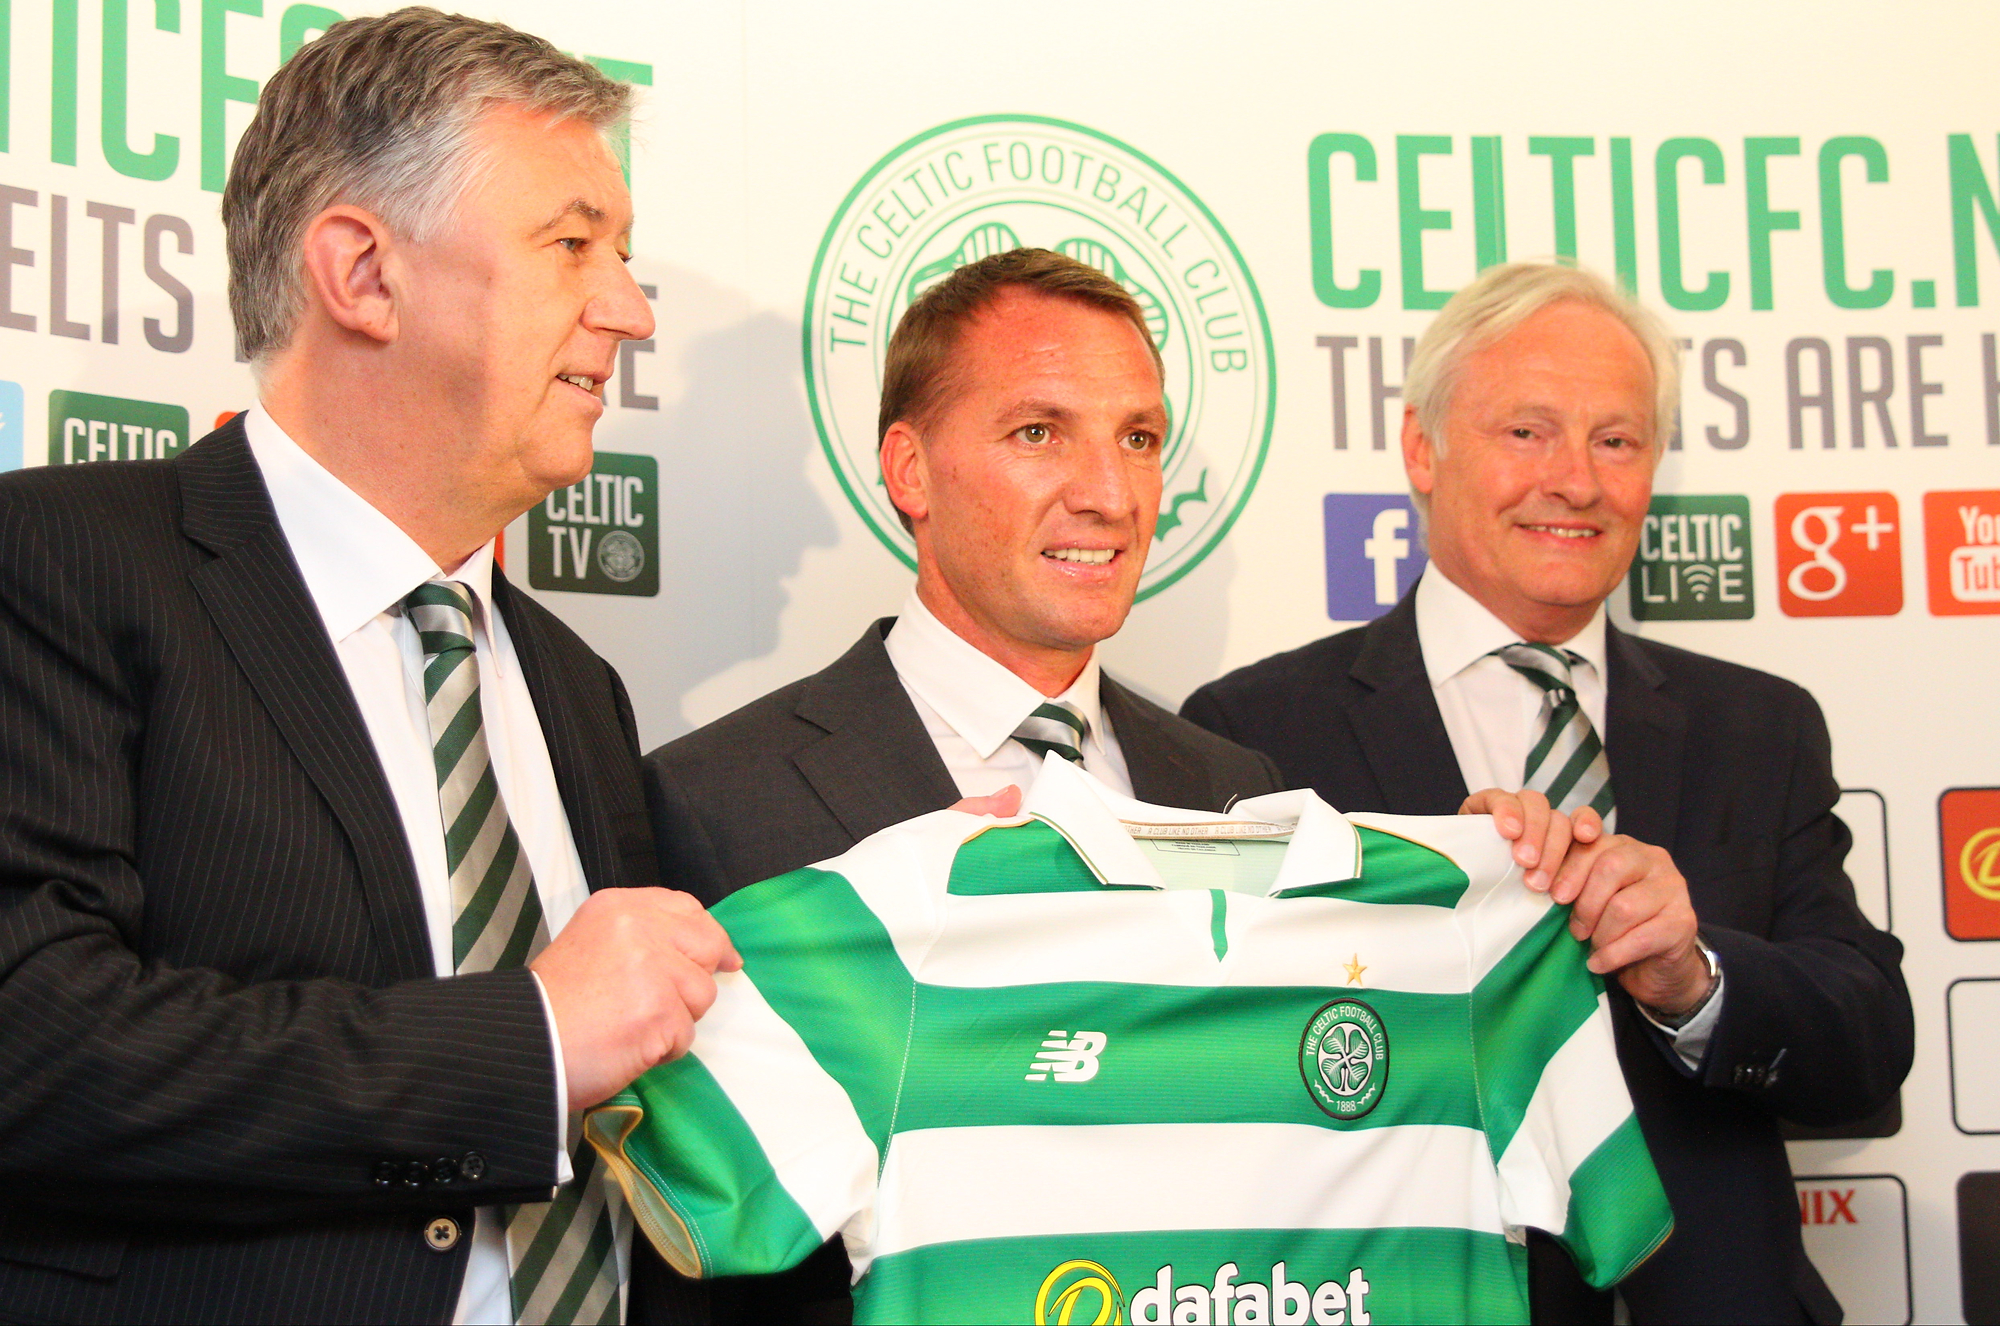 Celtic manager Brendan Rodgers marries Charlotte Searle Celtic